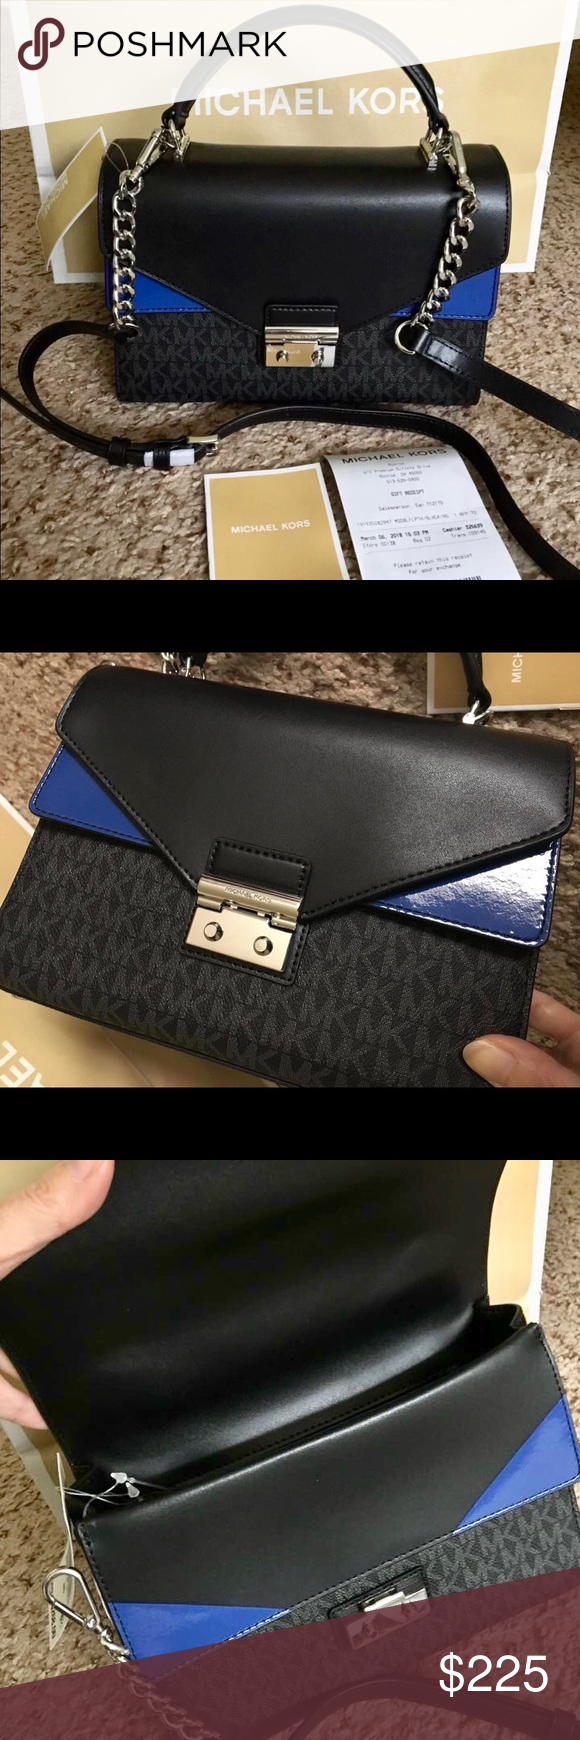 fb83d153de611a Michael Kors Sloan Logo Medium Double Flap Satchel Michael Kors Sloan Logo  & Leather Medium Double Flap Top Handle Satchel (Black/Electric Blue / Logo  ...